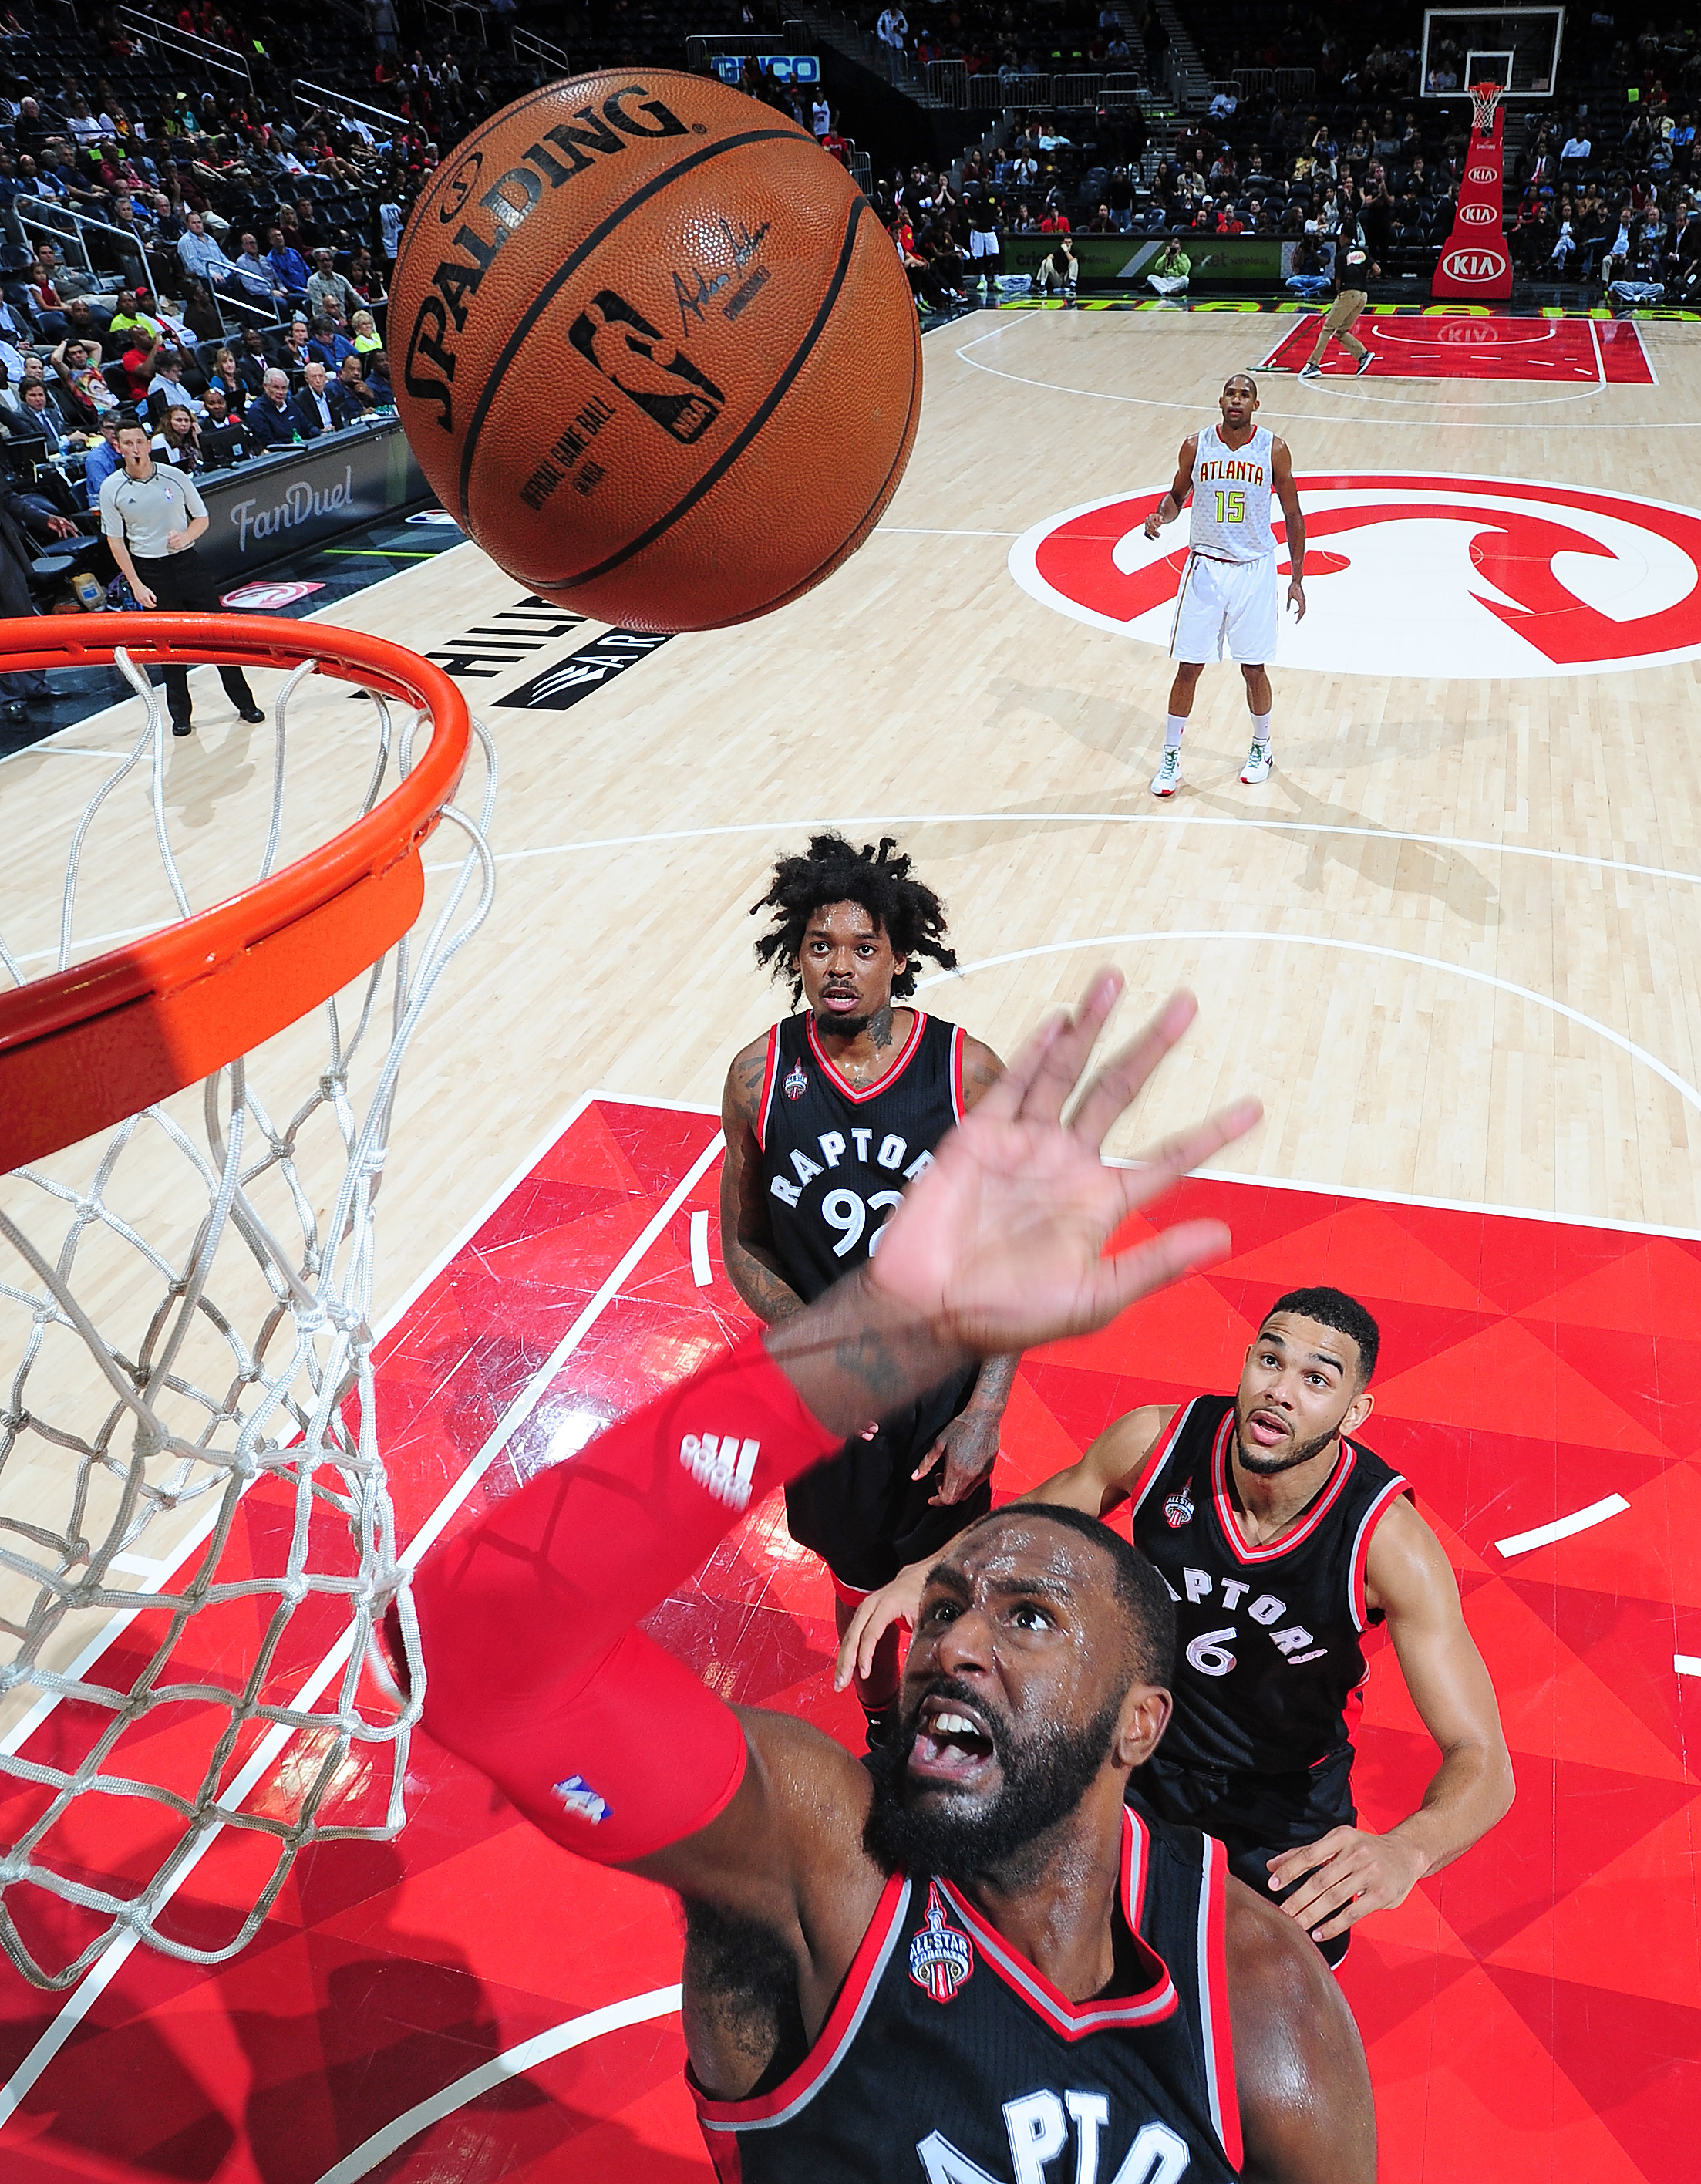 ATLANTA, GA - DECEMBER 2: Patrick Patterson #54 of the Toronto Raptors goes for the rebound during the game against the Atlanta Hawks on December 2, 2015 at Philips Arena in Atlanta, Georgia.  (Photo by Scott Cunningham/NBAE via Getty Images)